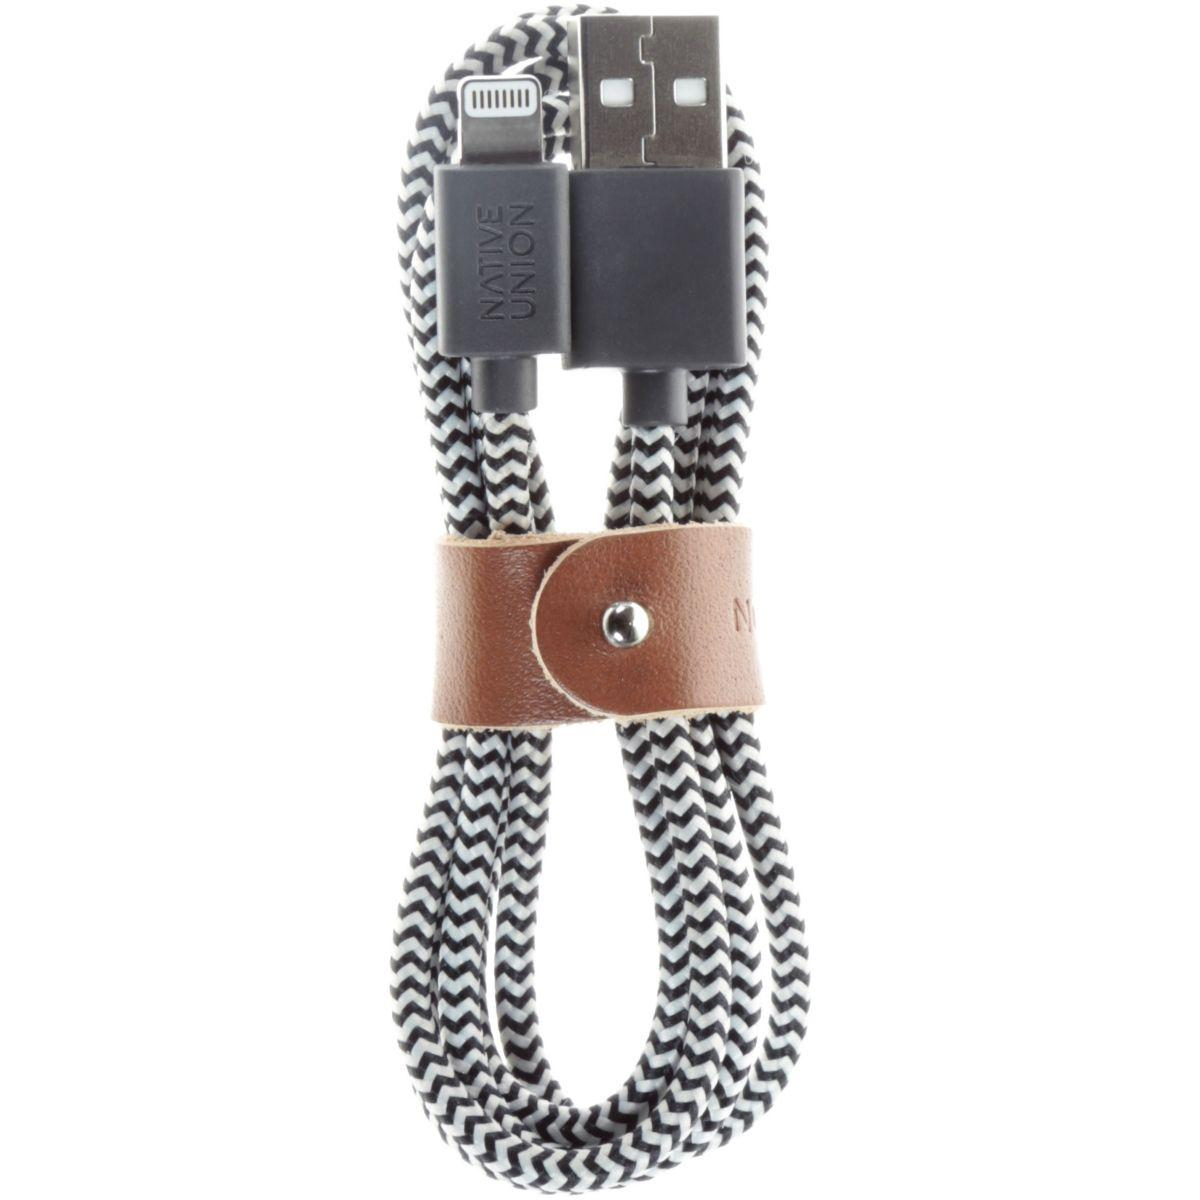 Câble lightning native union belt zebra 1m20 - 3% de remise immédiate avec le code : multi3 (photo)